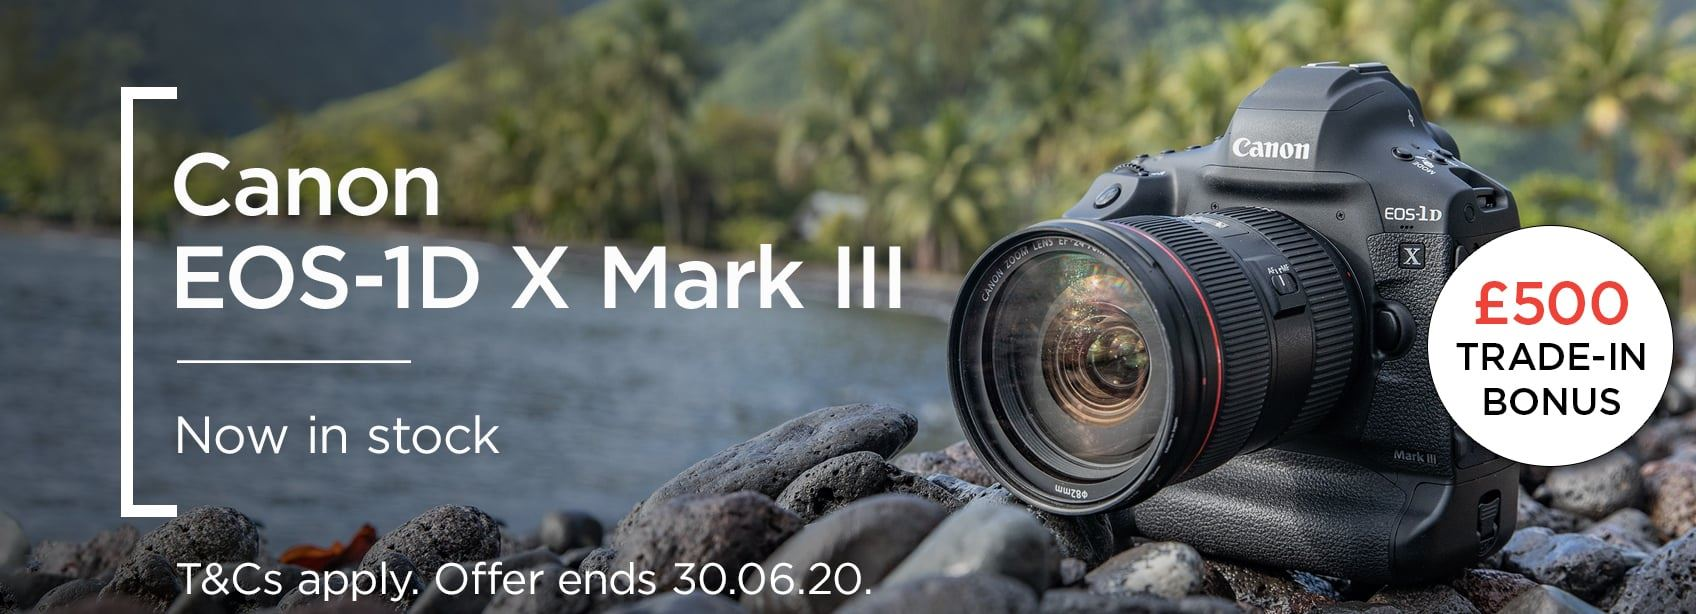 Canon EOS-1D X Mark III - Now in stock